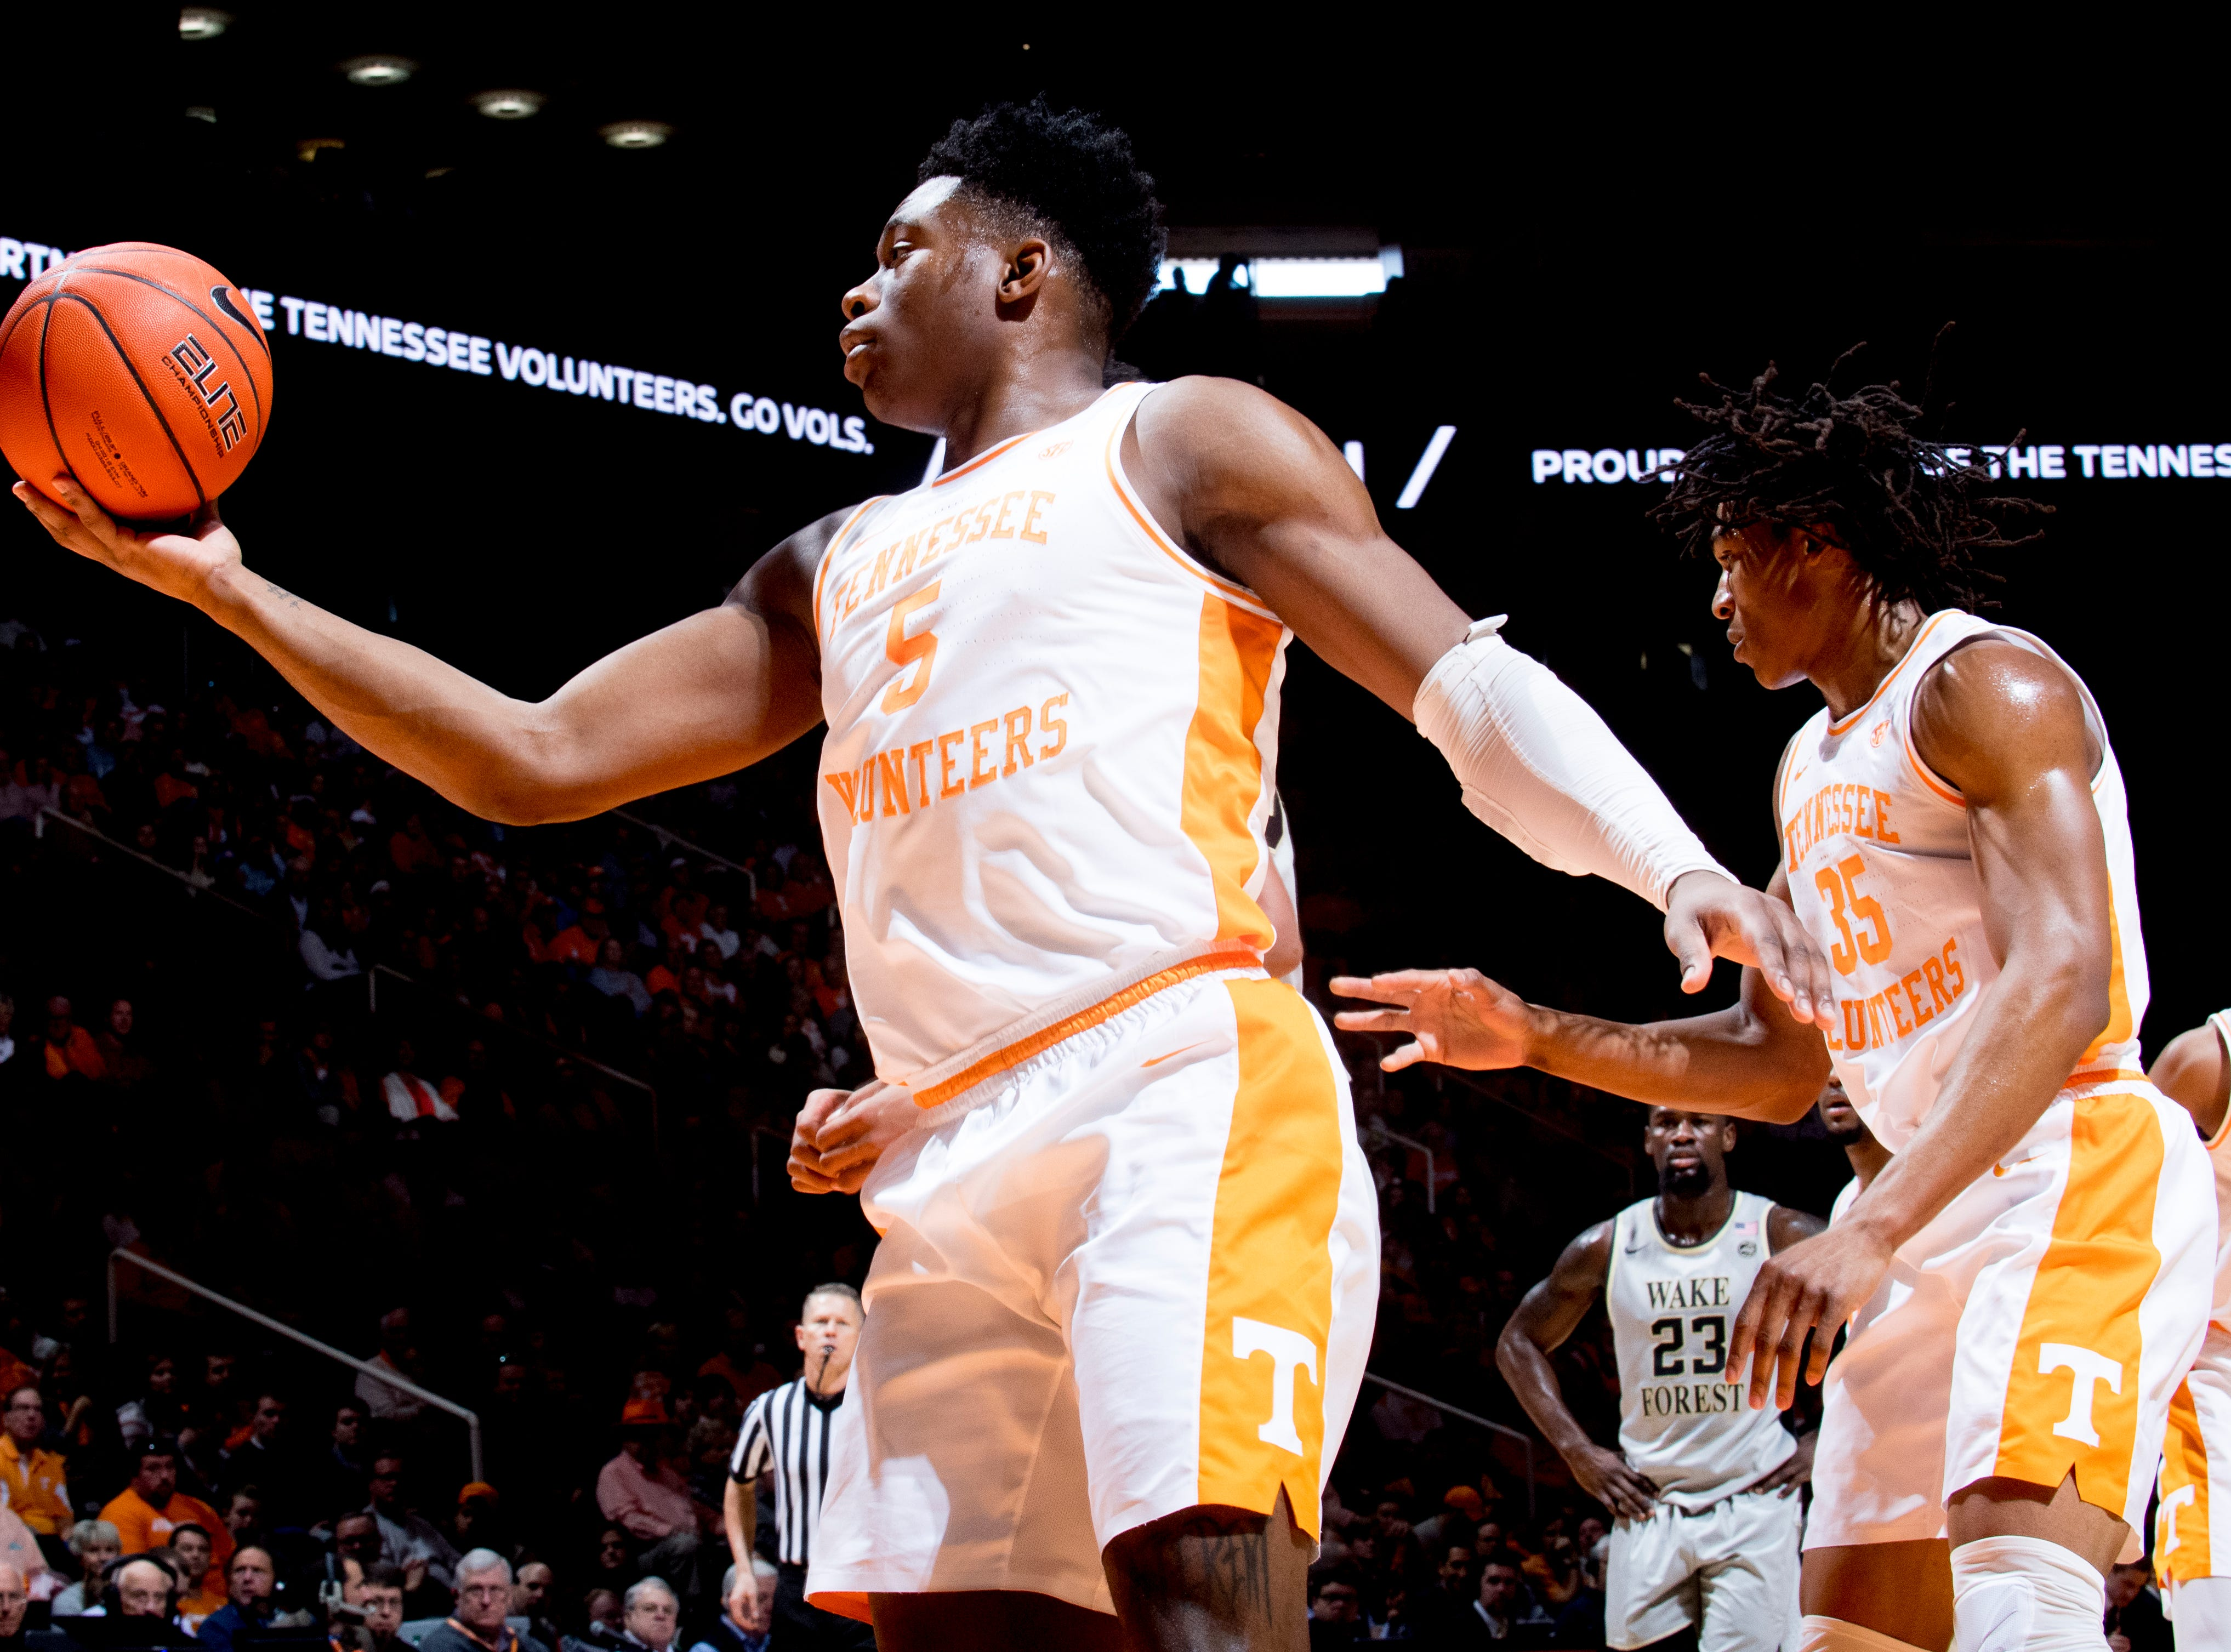 Tennessee guard Admiral Schofield (5) grabs the rebound during a game between Tennessee and Wake Forest at Thompson-Boling Arena in Knoxville, Tennessee on Saturday, December 22, 2018.